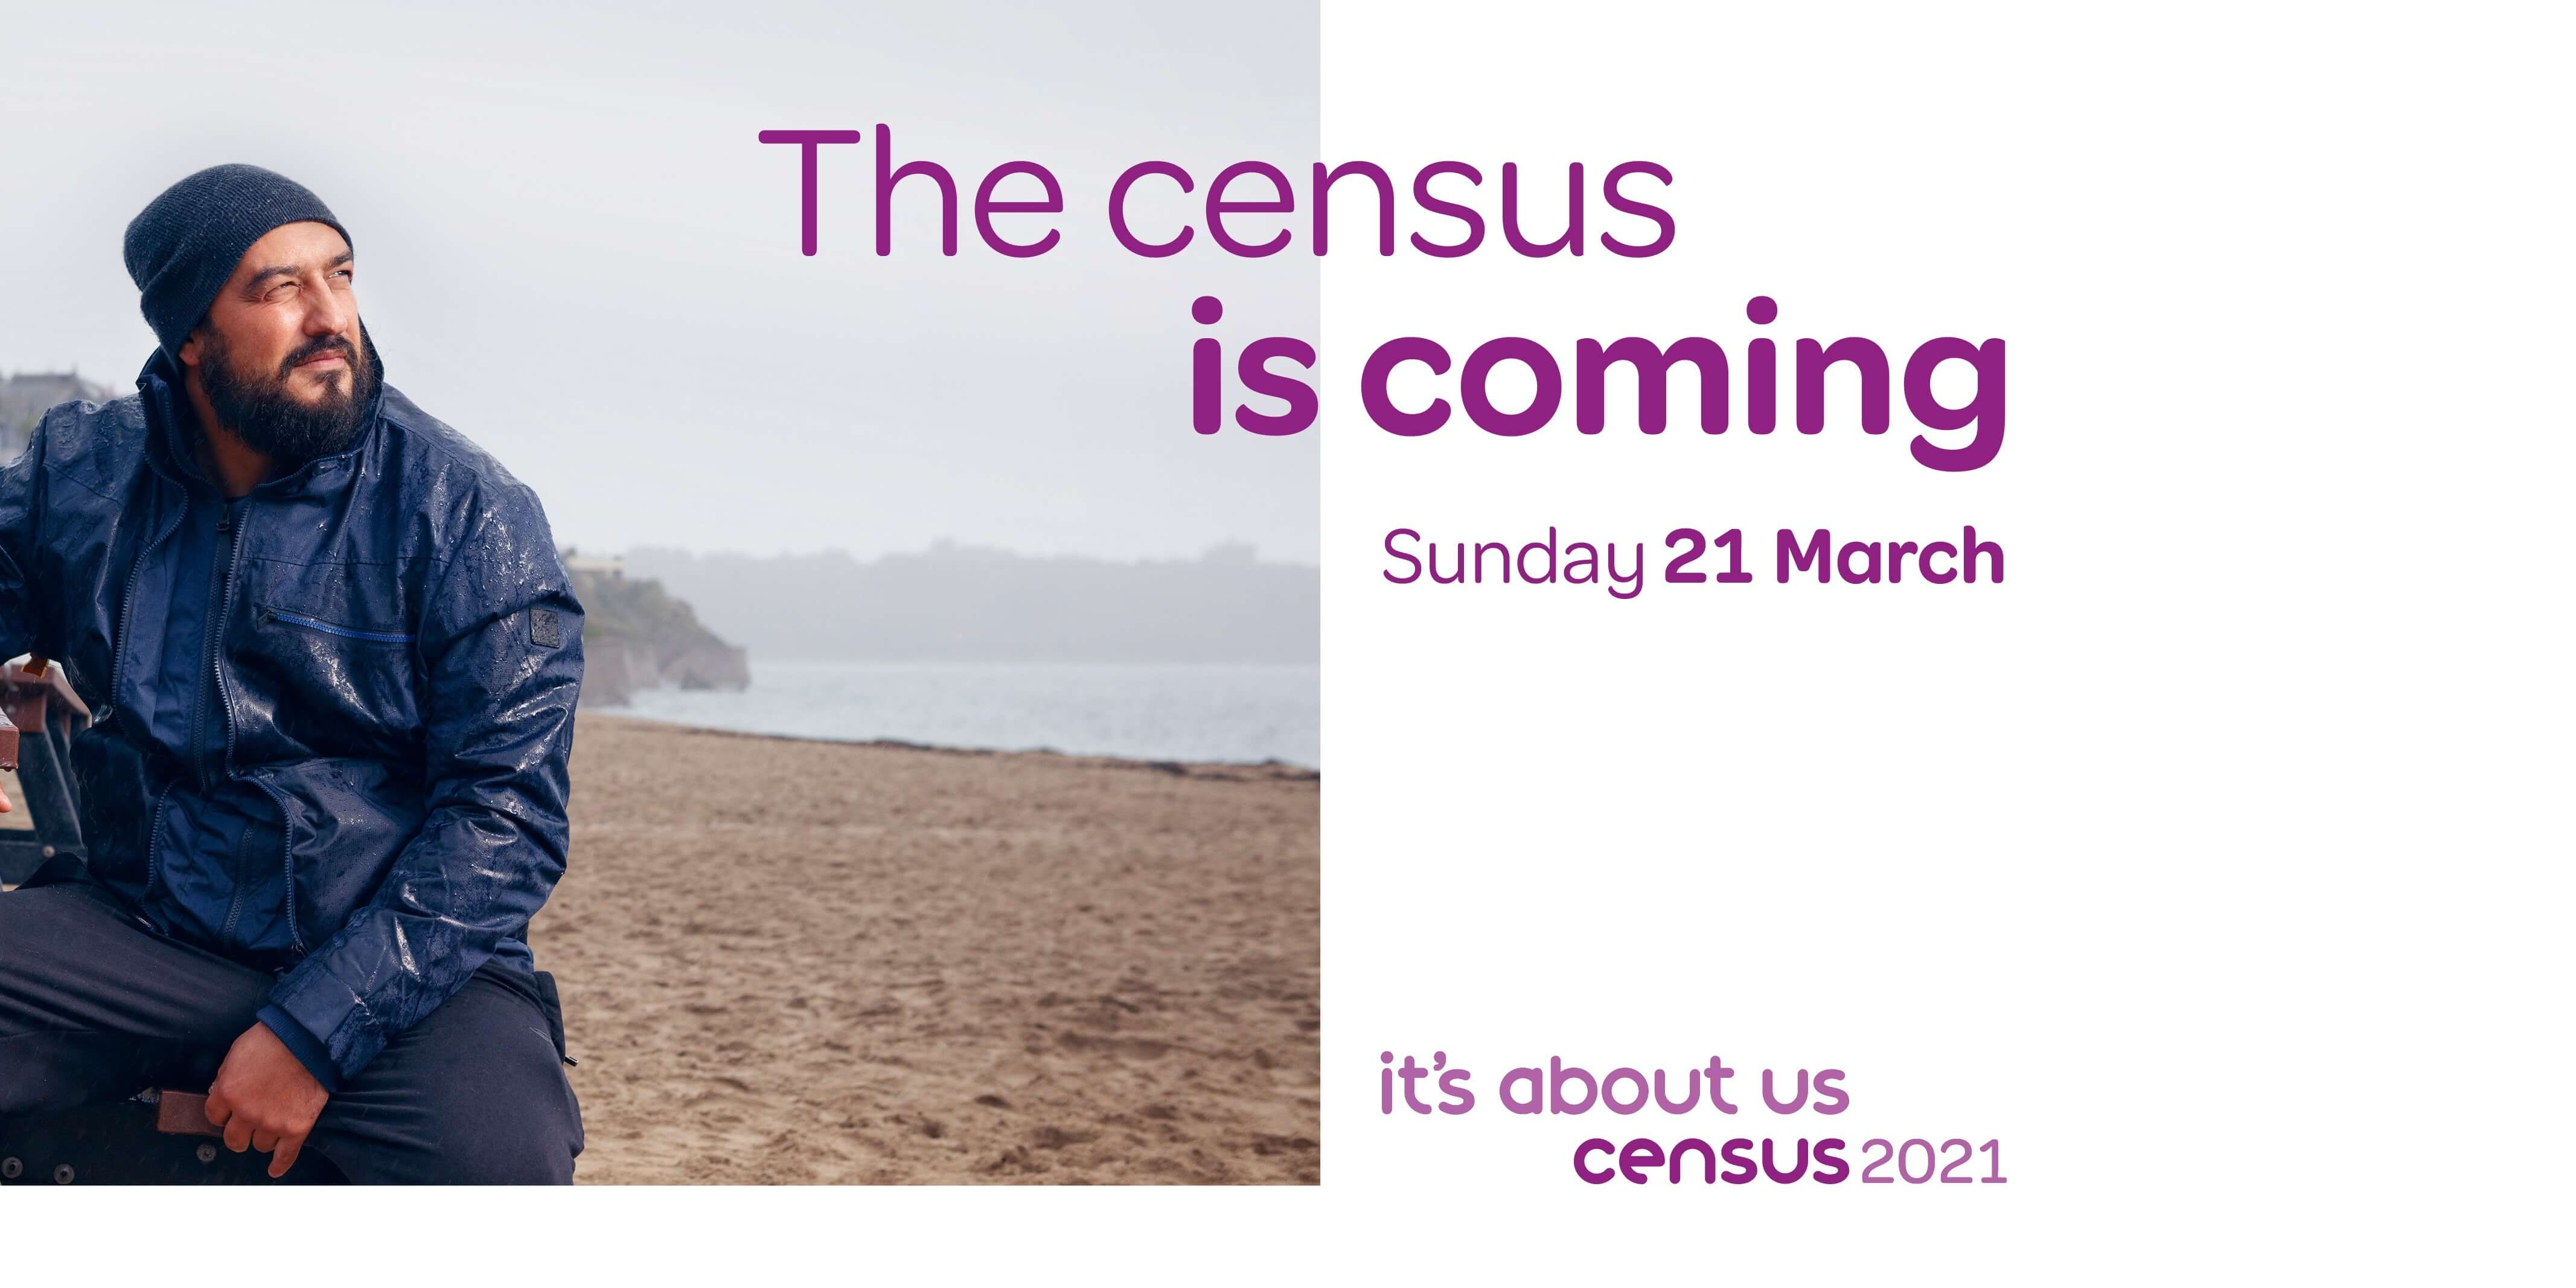 The census is coming reduced.